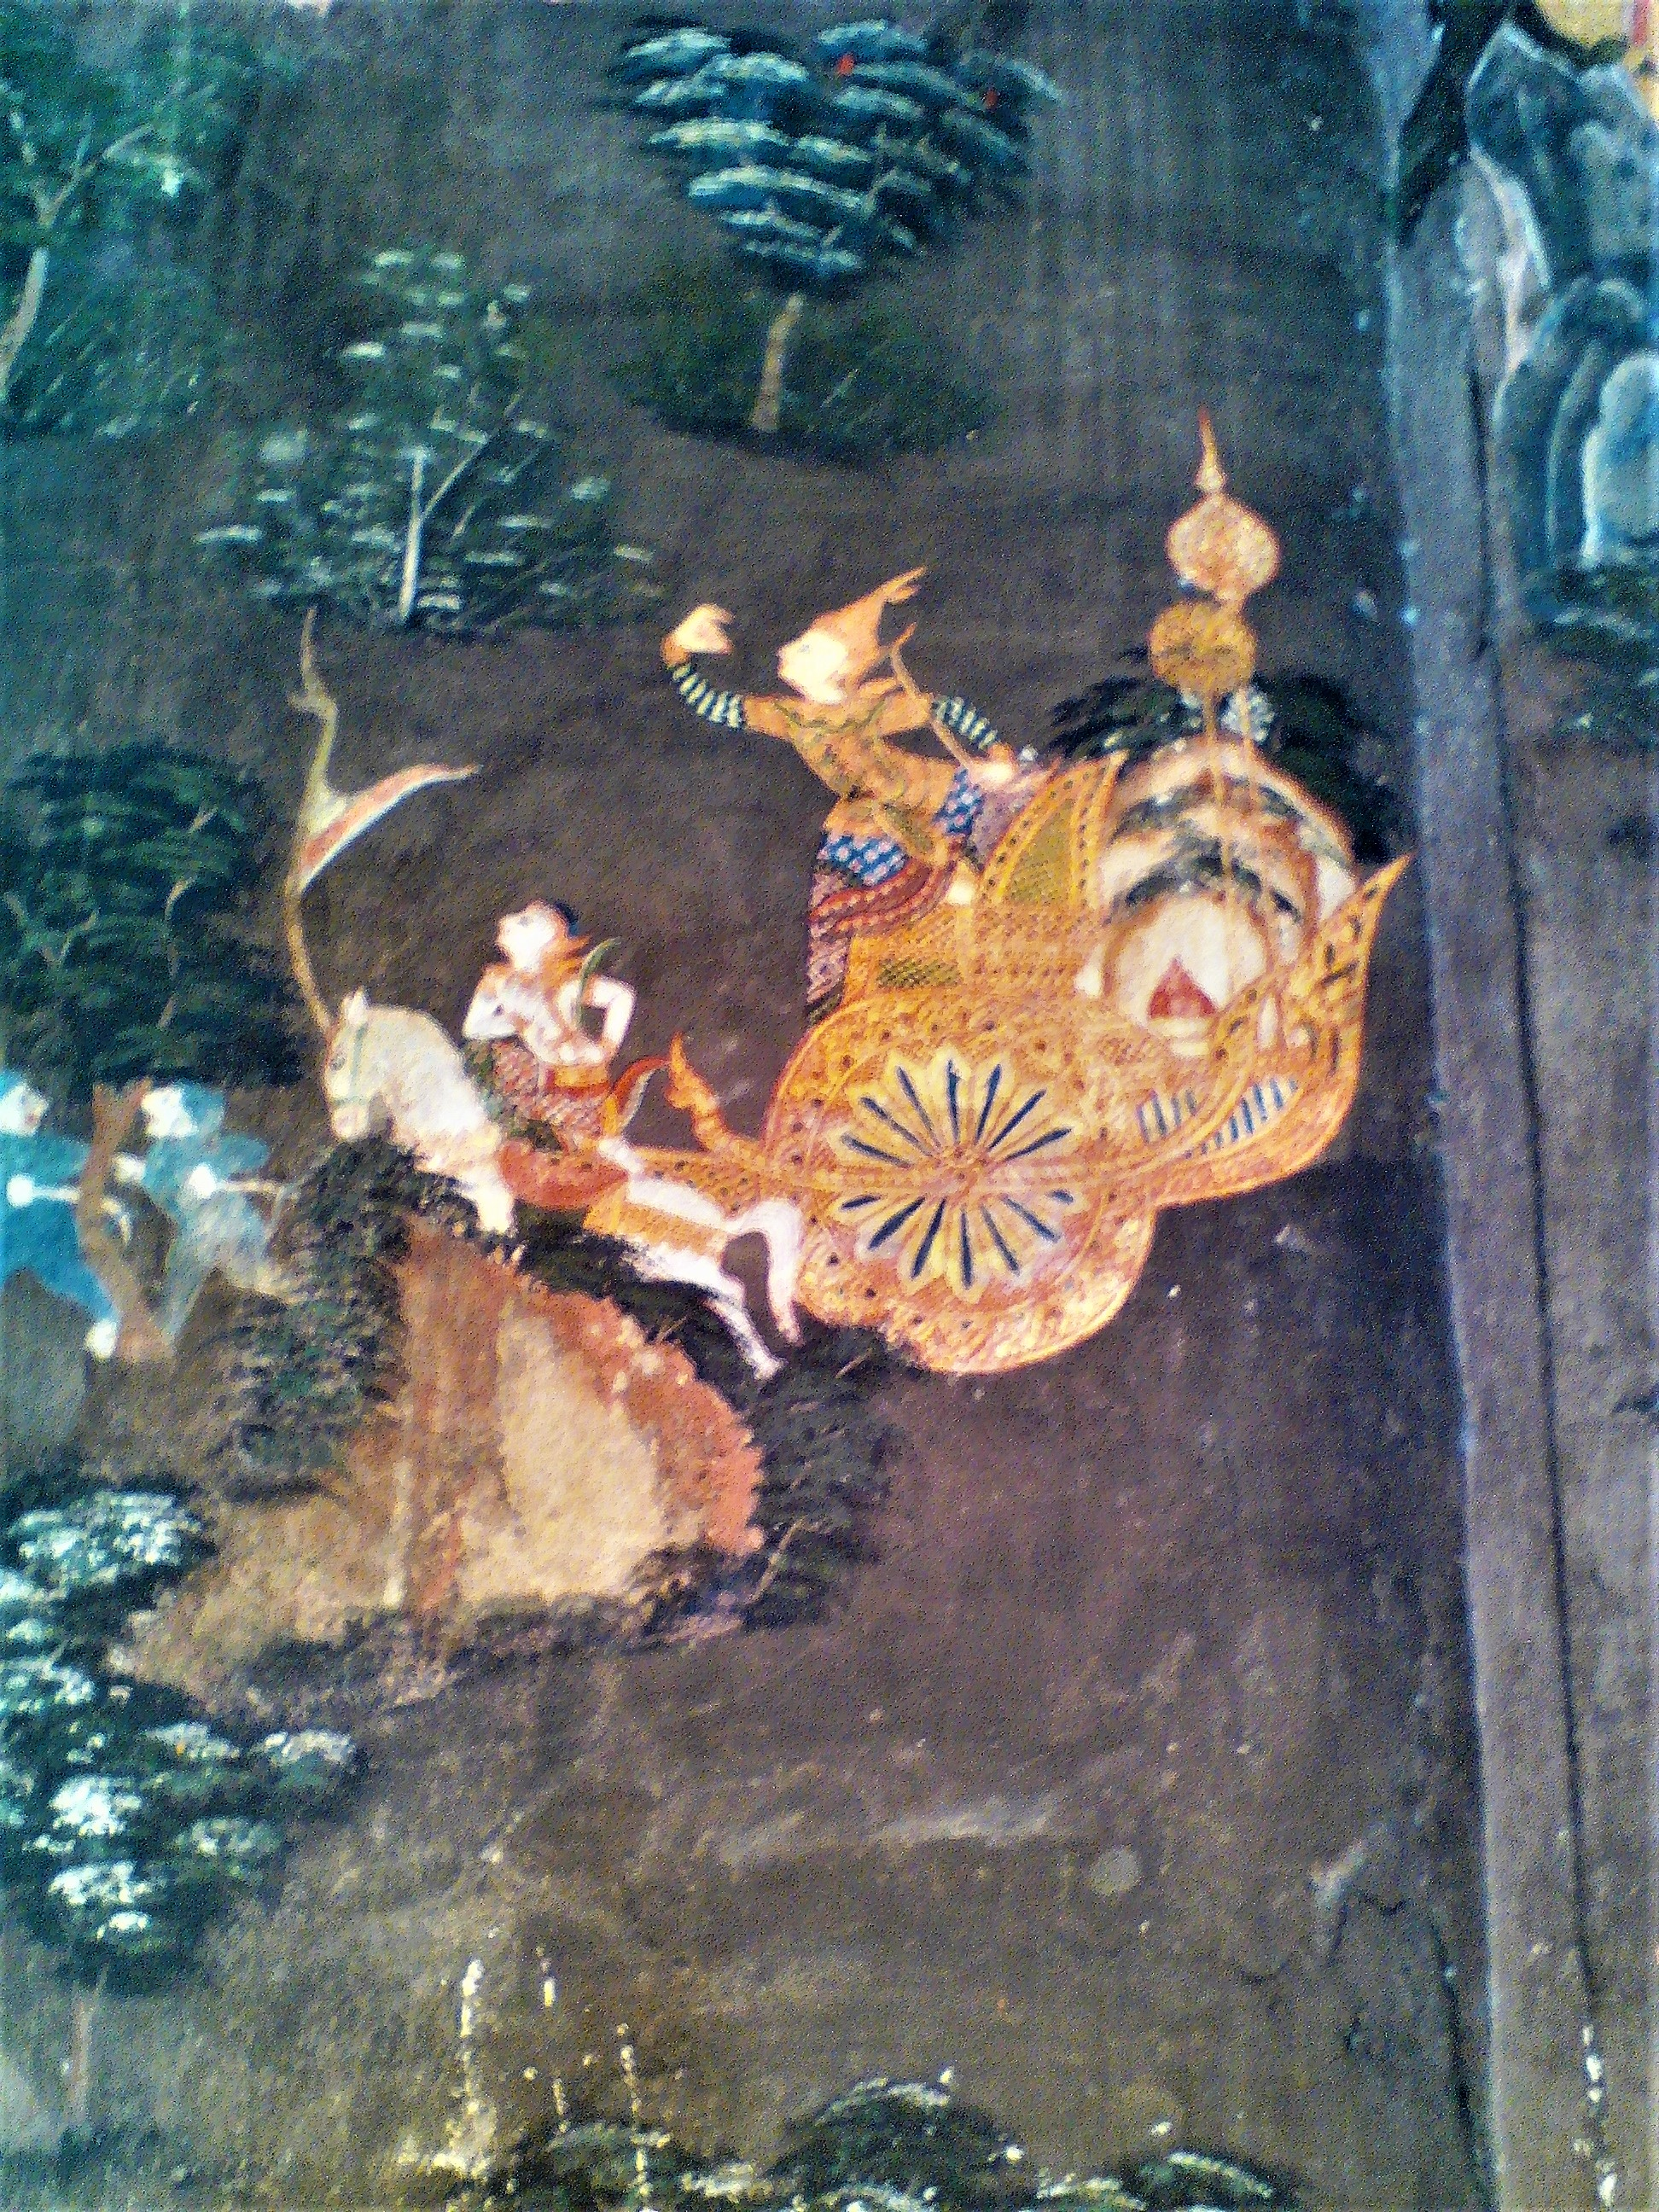 Antice temple decoration